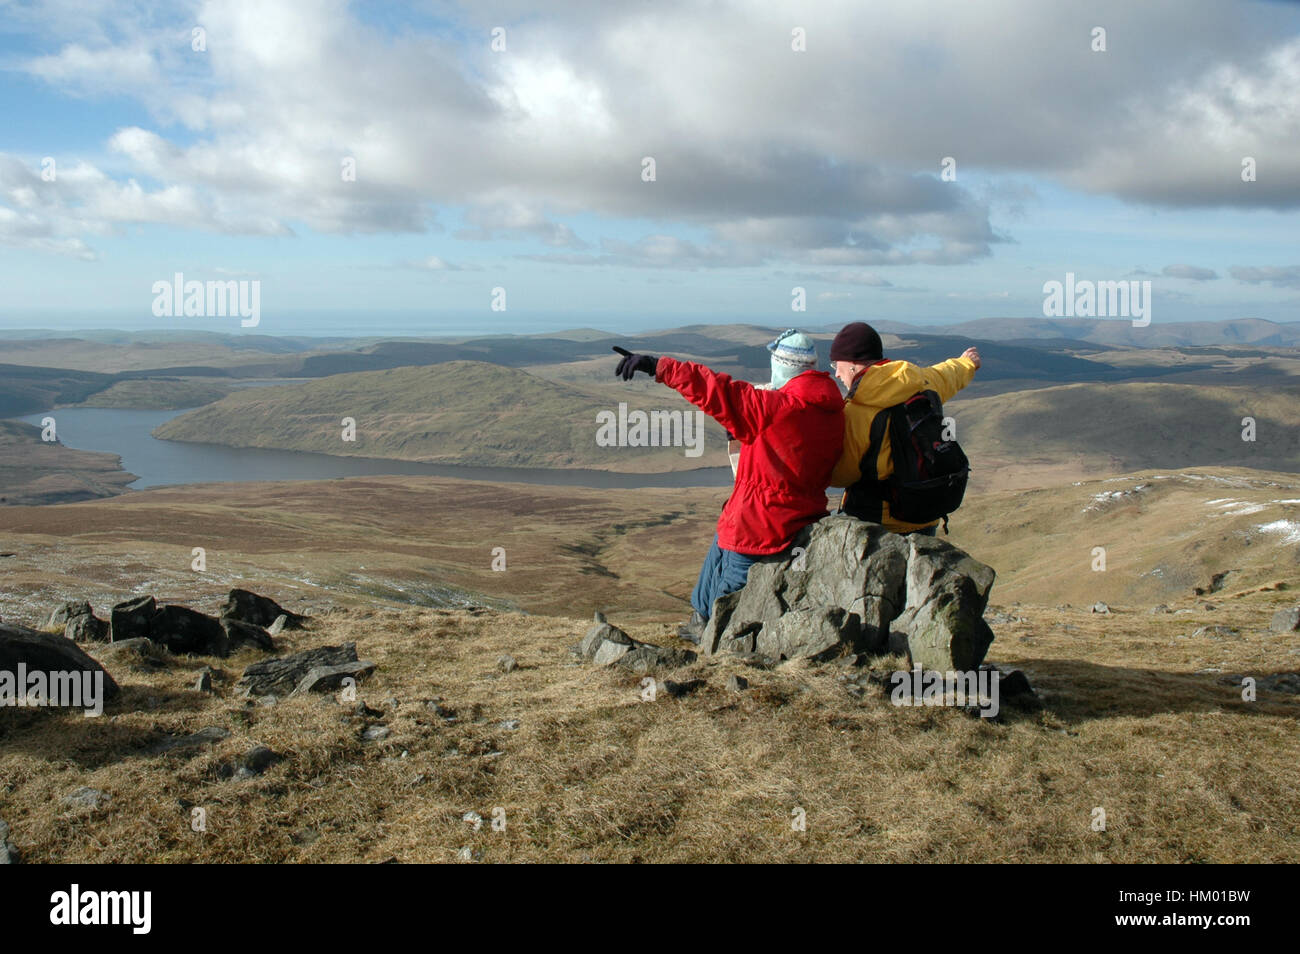 Two hill walkers sitting on rocks at summit reading map and pointing in opposite directions, bright winters day - Stock Image